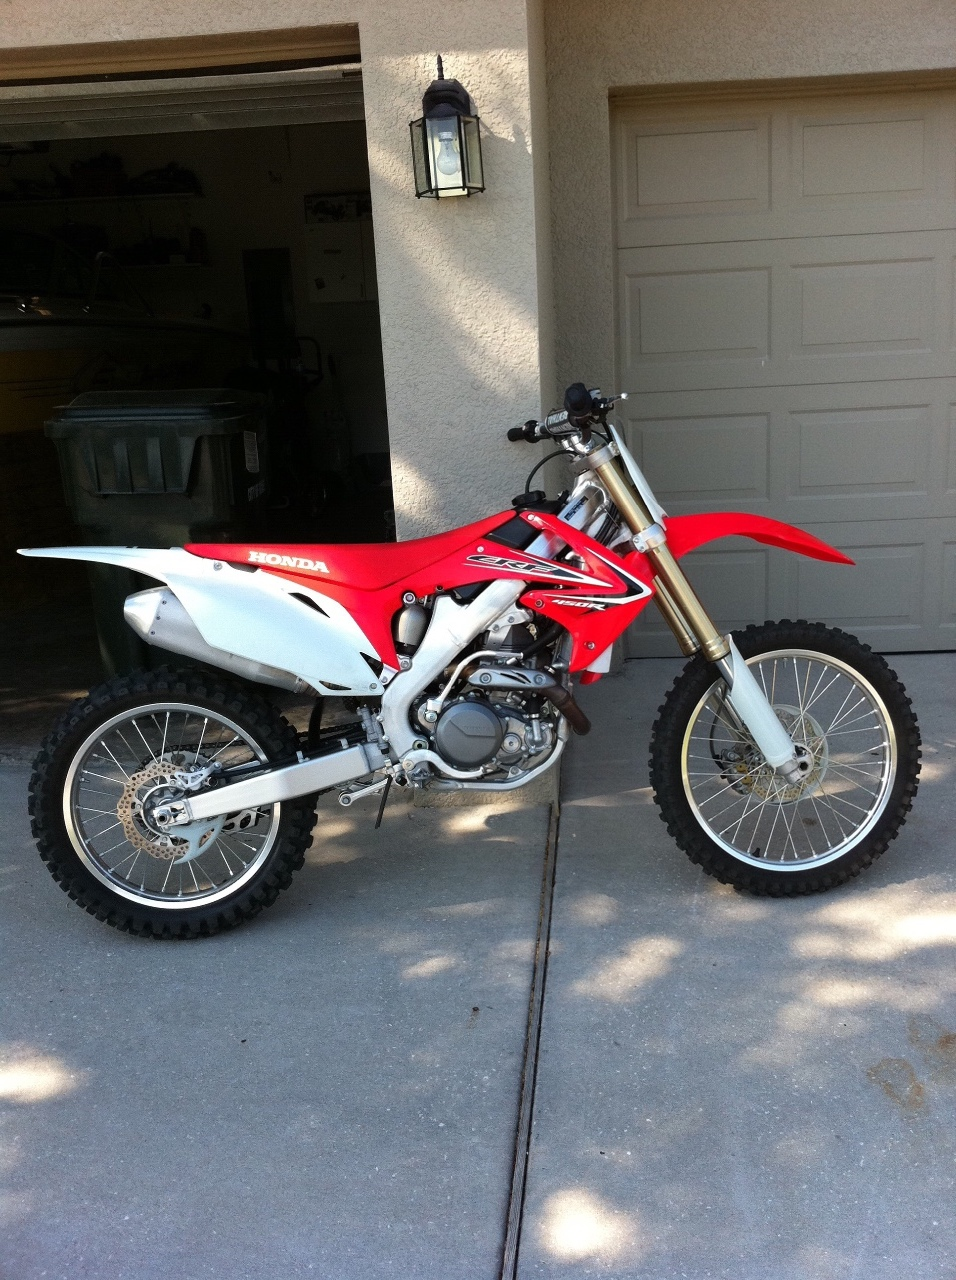 5962 Honda Dirt Bike Motorcycles For Sale Cycle Trader 2006 125cc